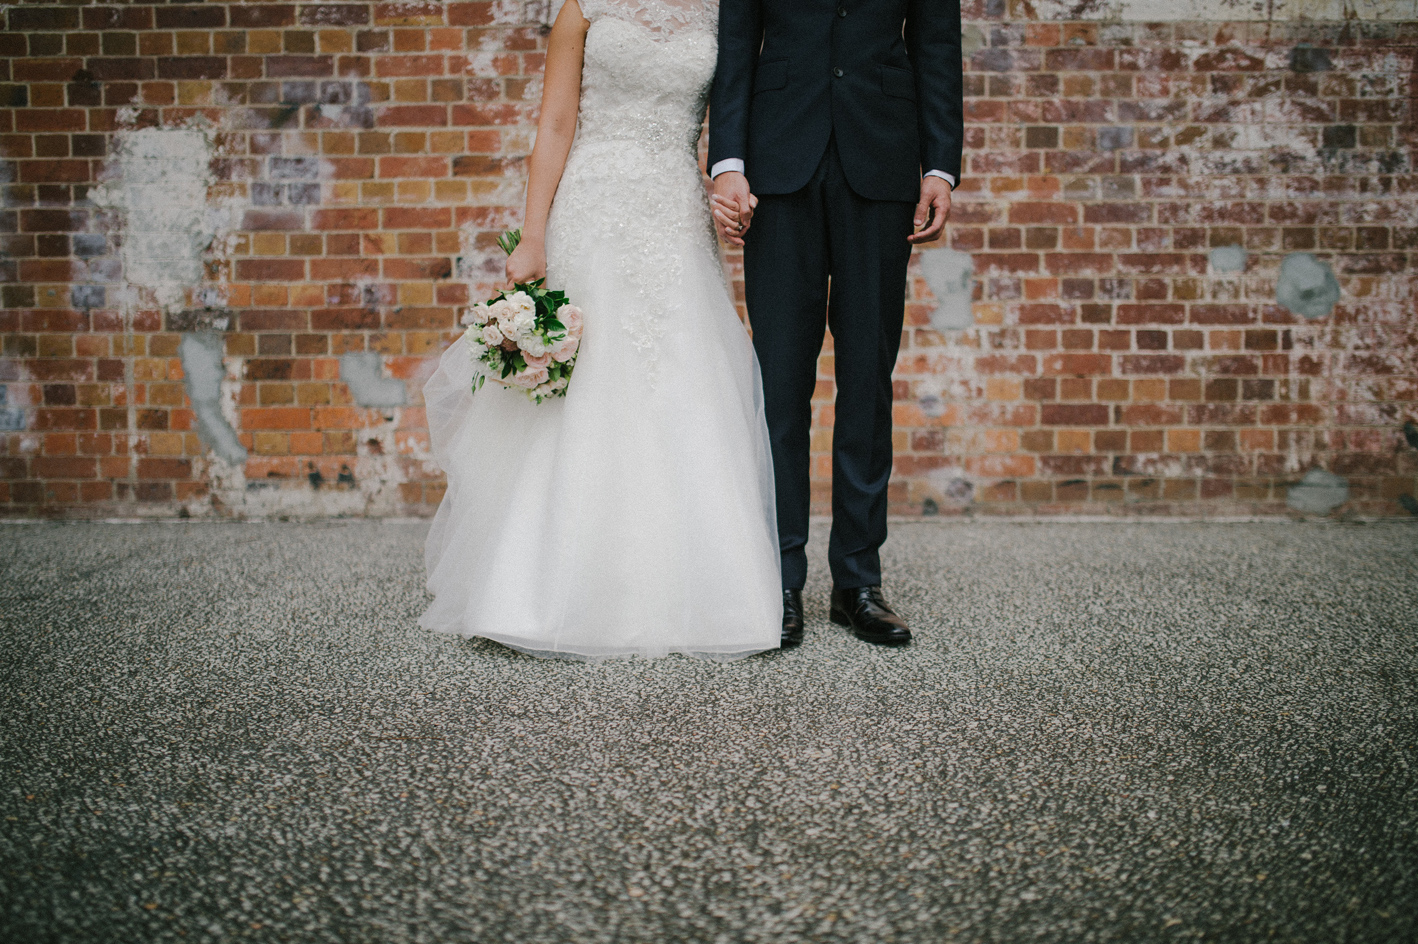 050-laurel-ivan-brisbane-wedding_sophie-baker-photography